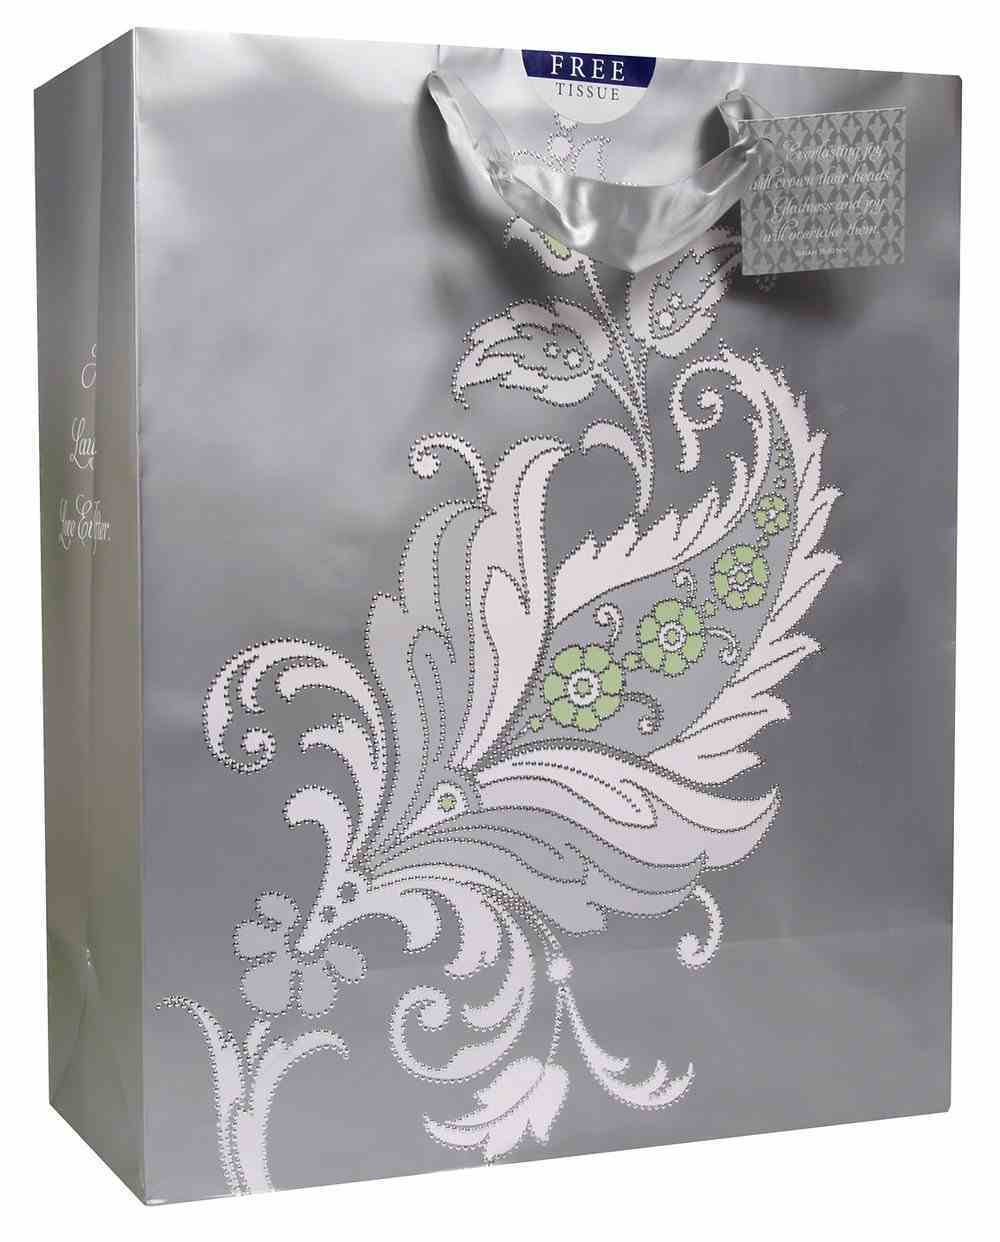 Gift Bag Xlarge: Wedding Everlasting Joy, Grey (Incl Two Sheets Tissue Paper & Gift Tag) Stationery